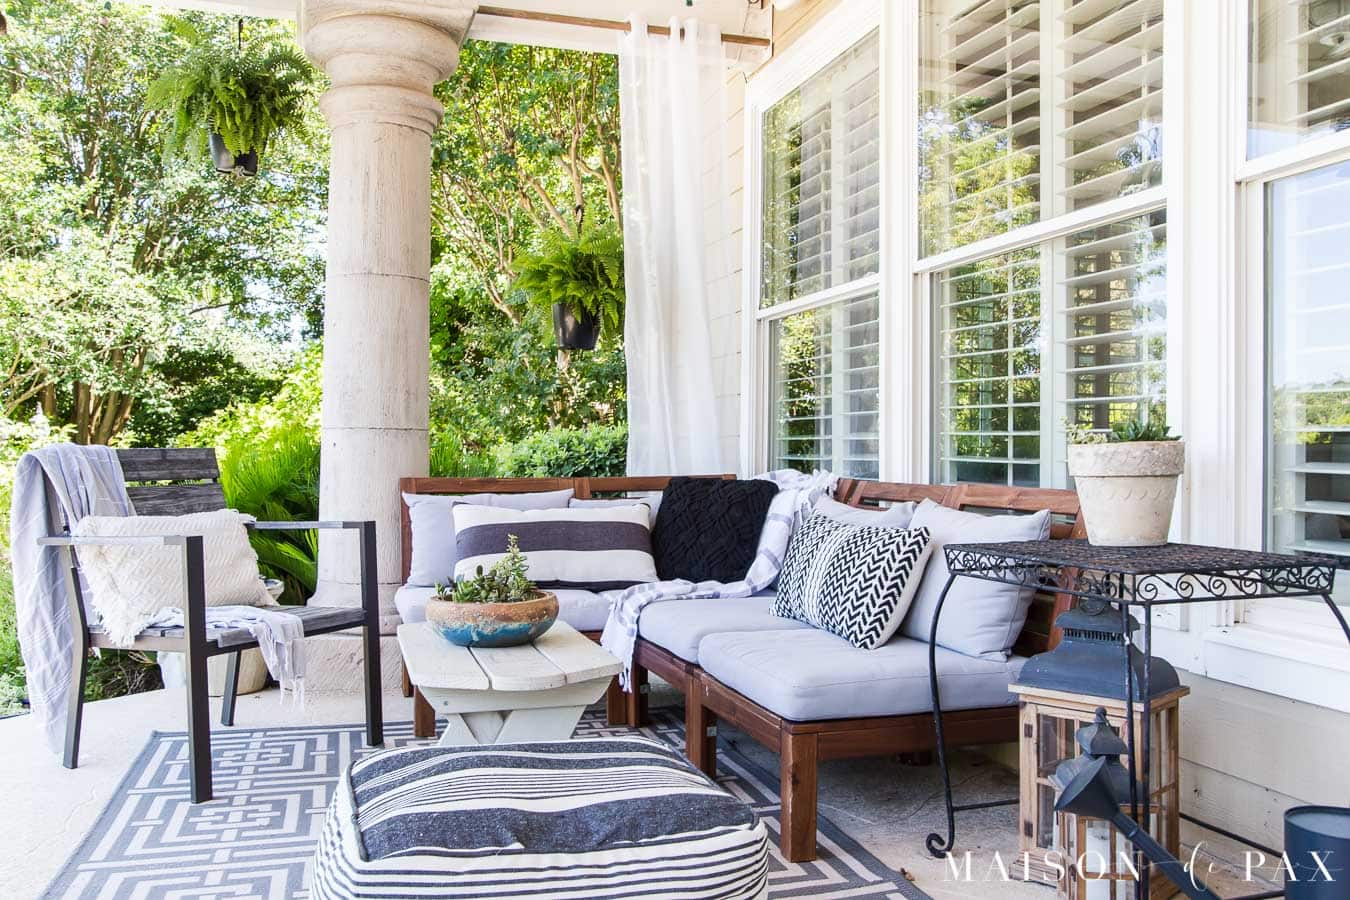 covered patio with large columns and wood furniture with cushions | Maison de Pax